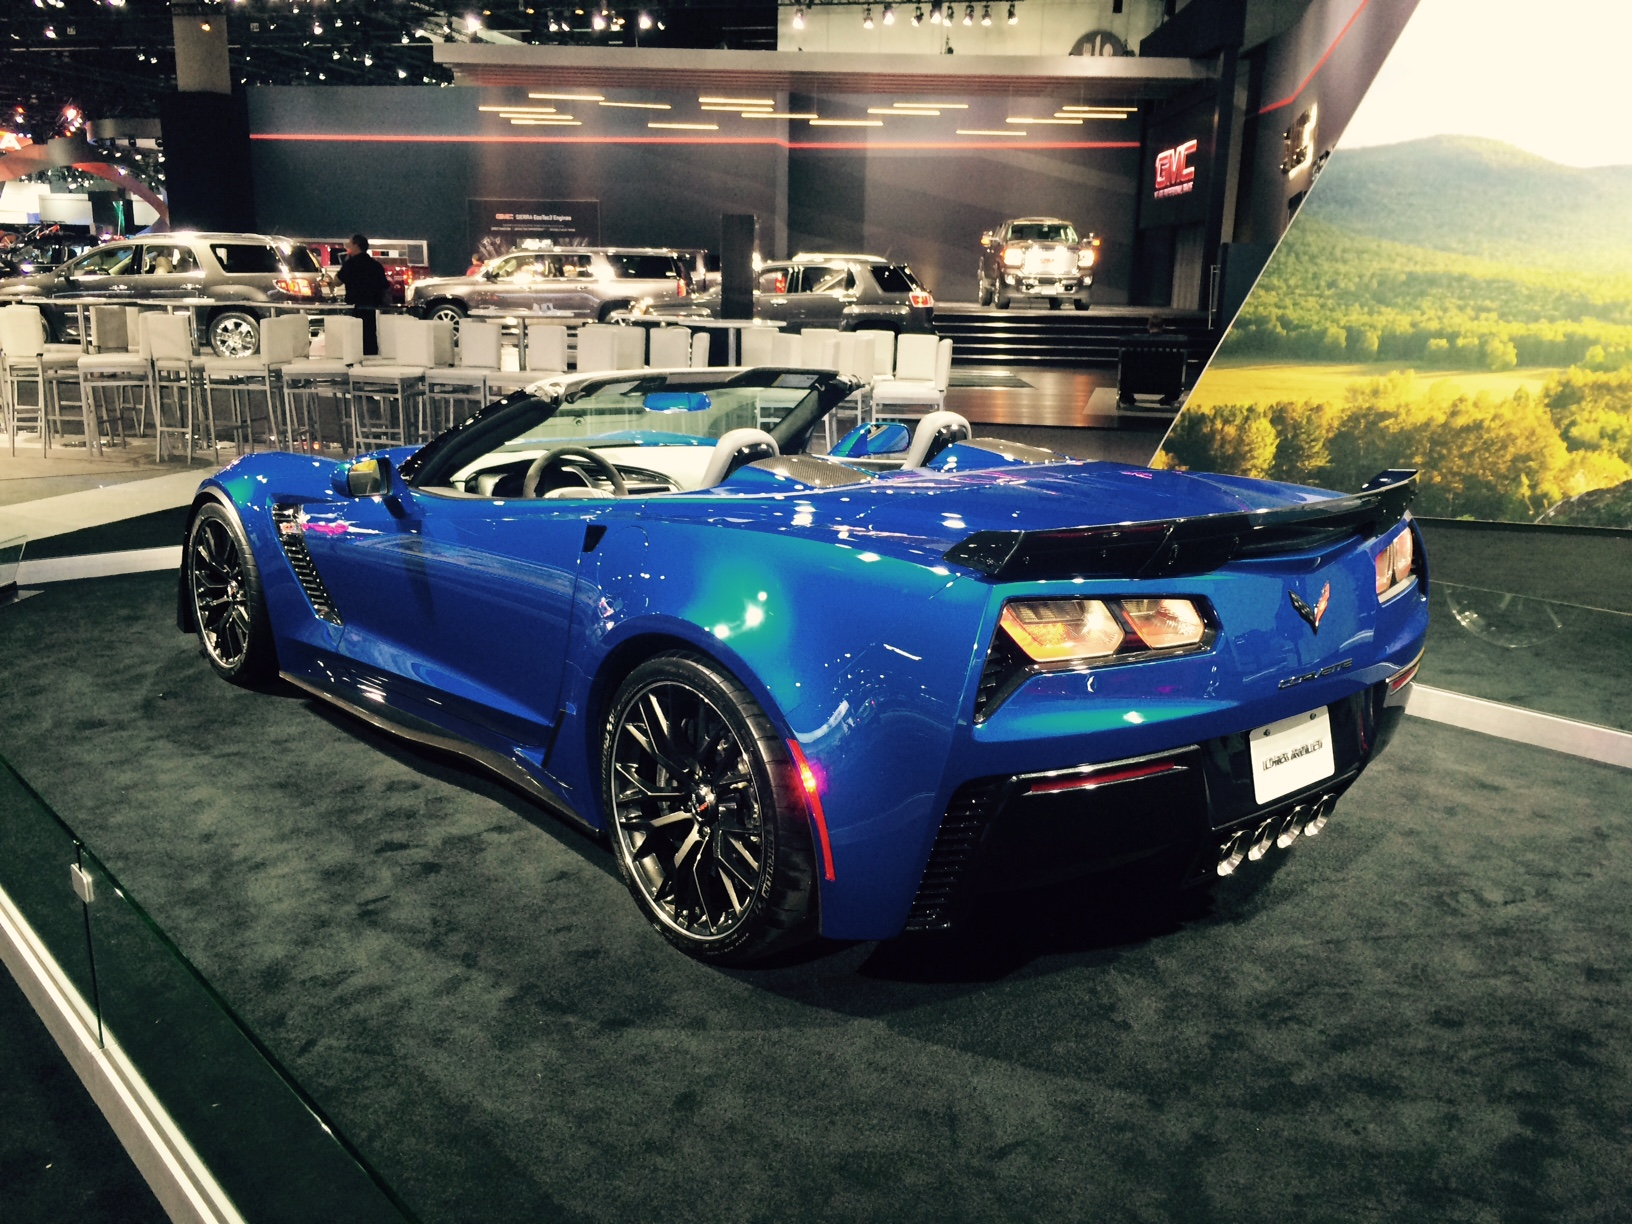 2015 corvette z06 in blue at the la auto show corvette. Black Bedroom Furniture Sets. Home Design Ideas